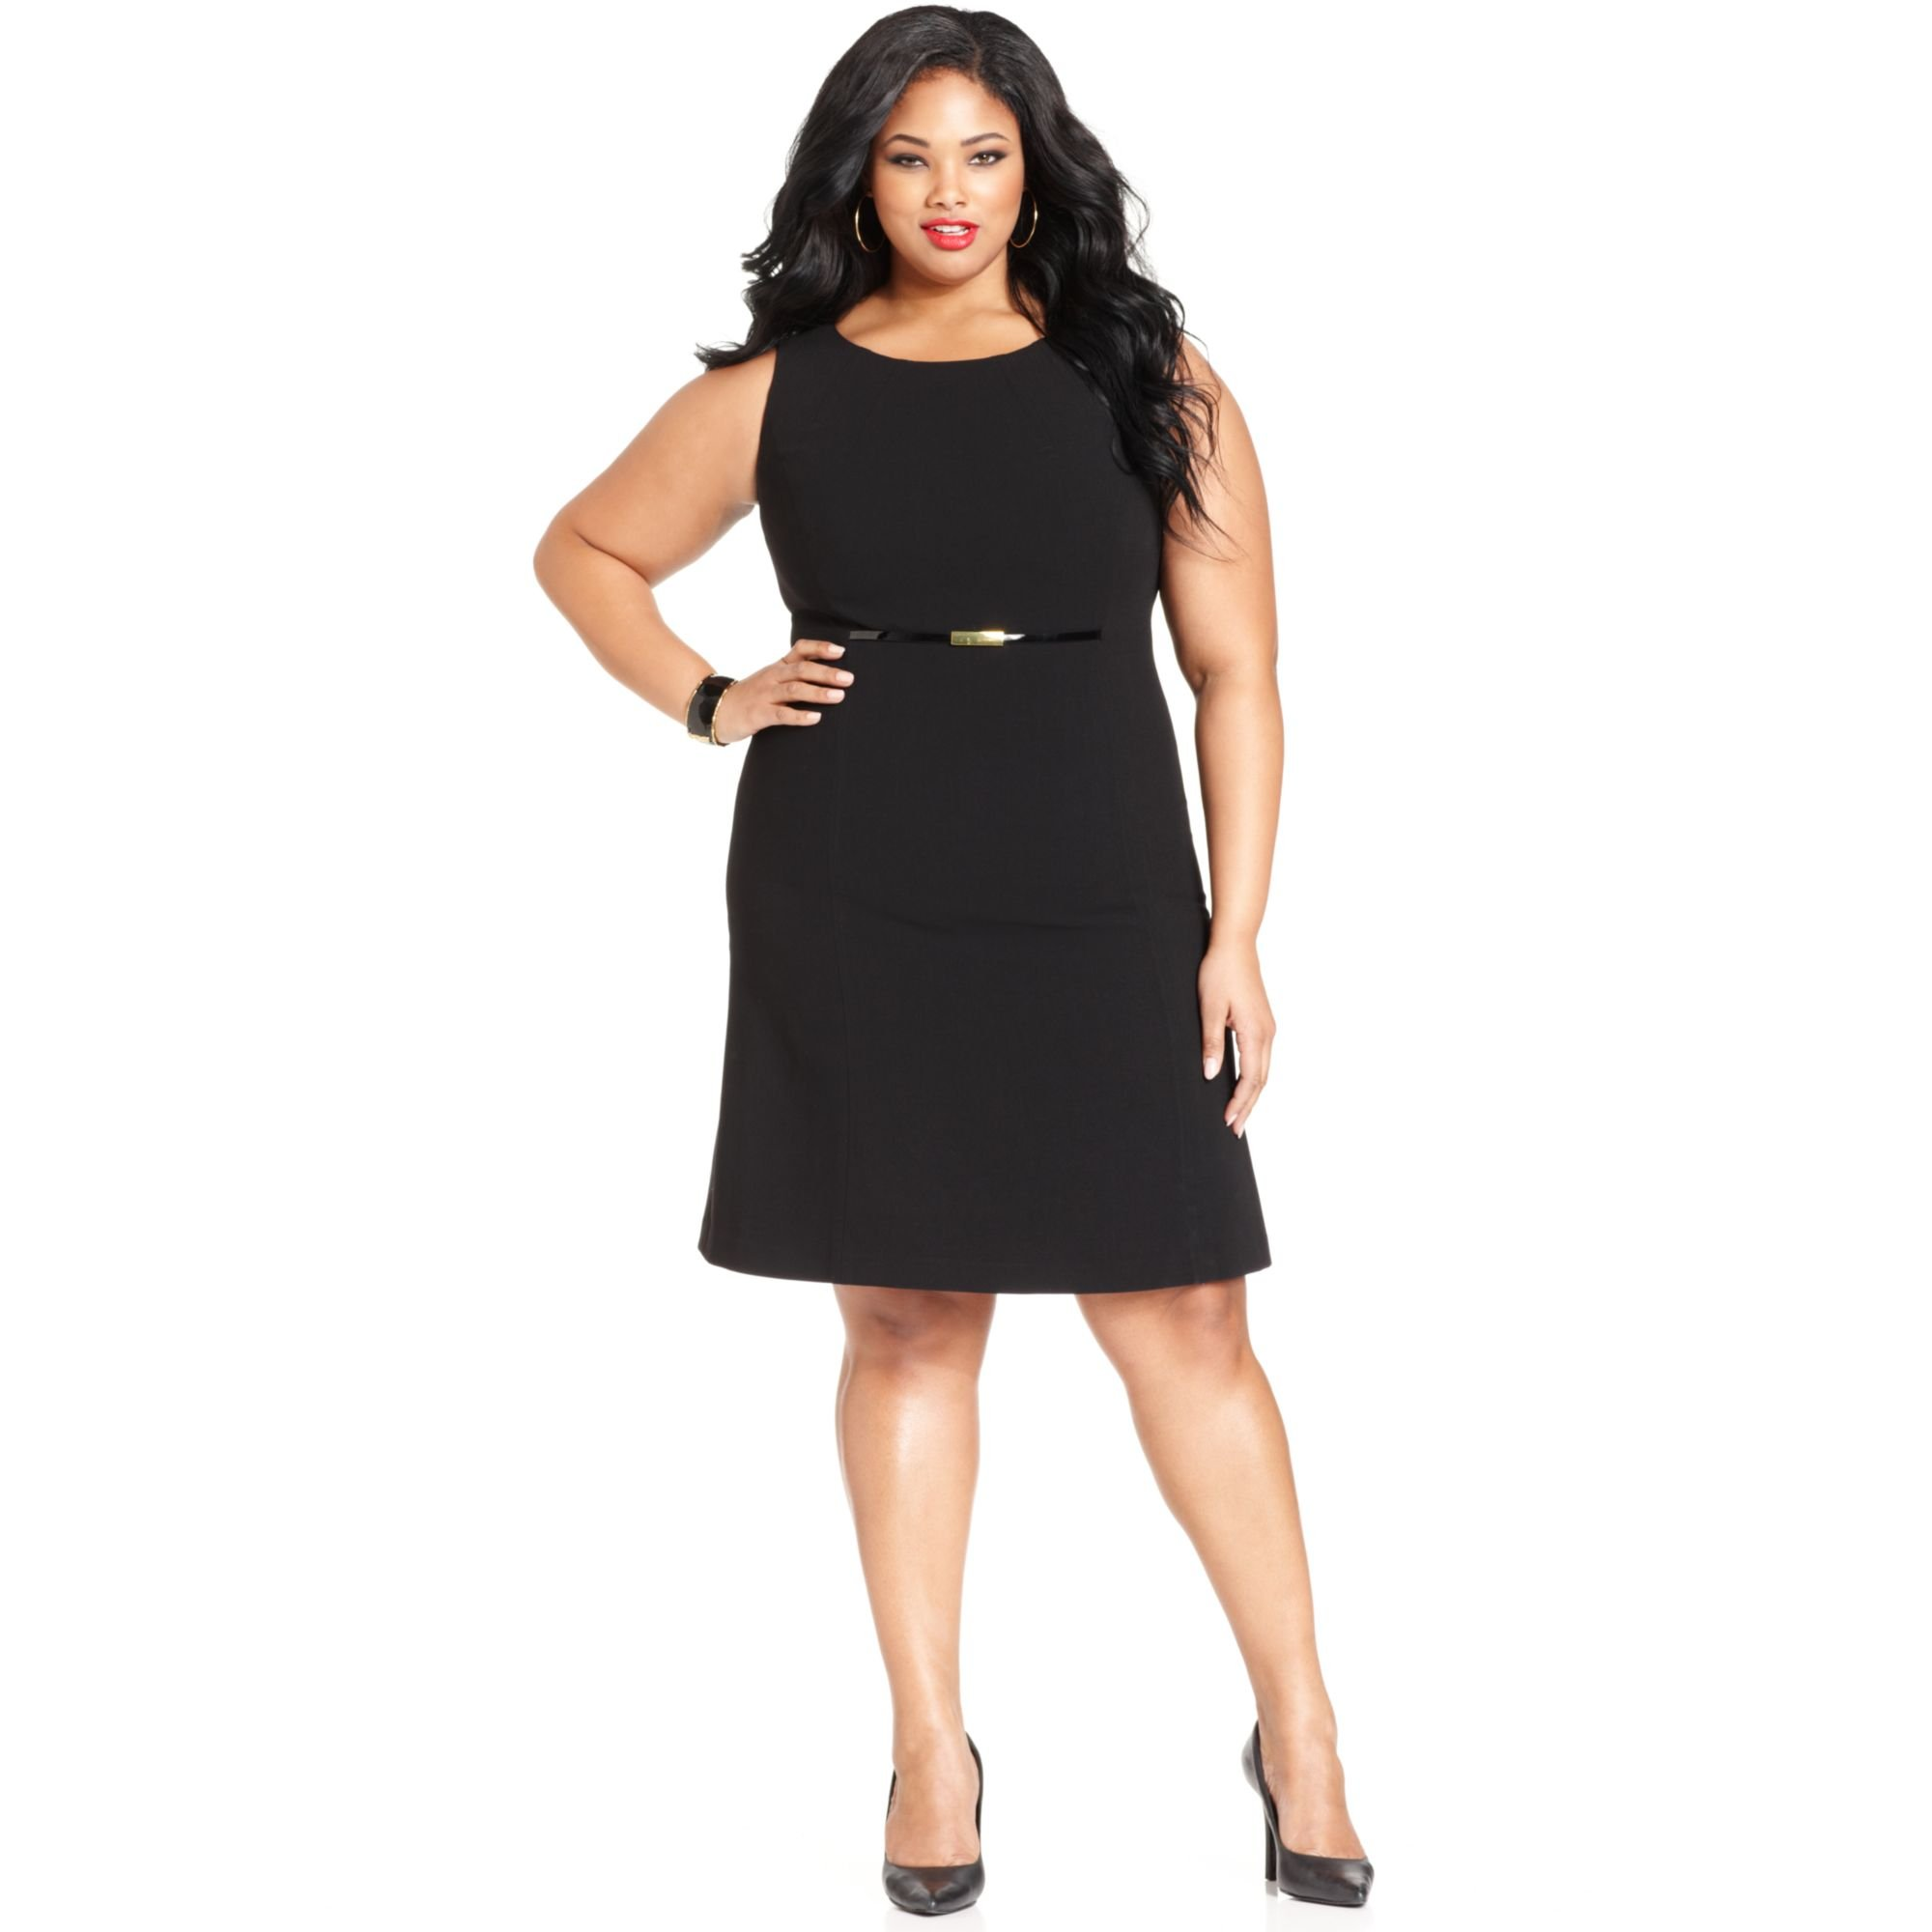 Clothing stores for petite sizes